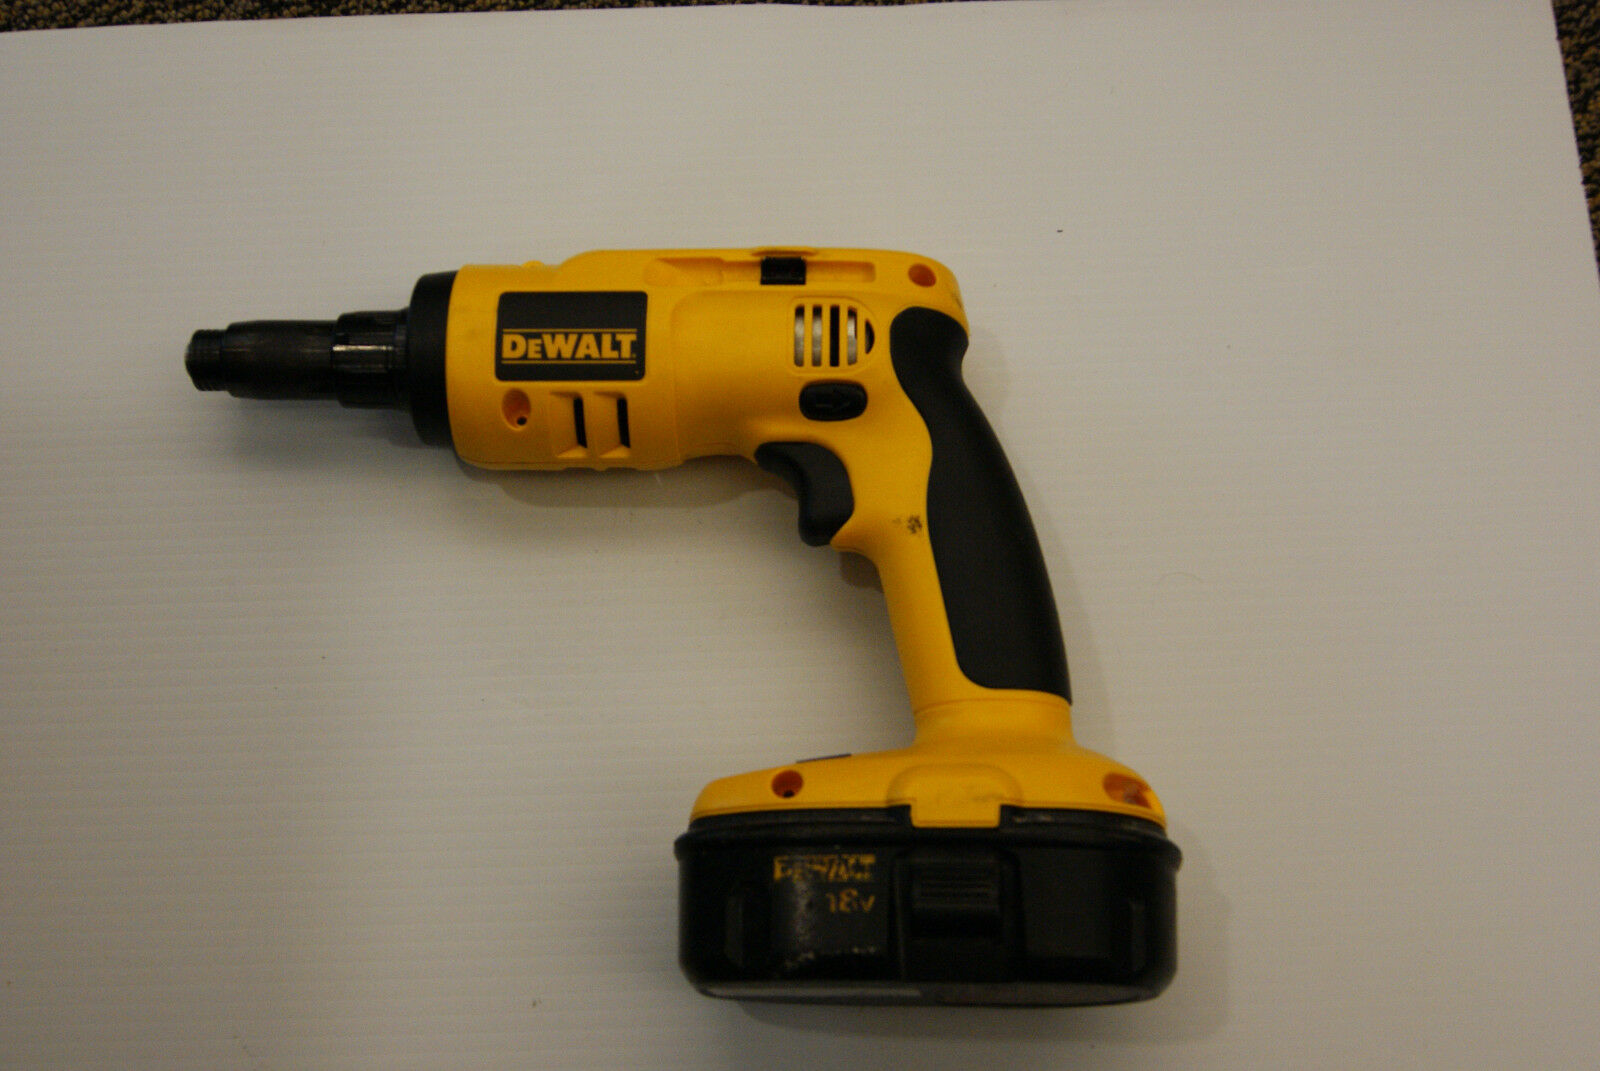 DeWalt Cordless Light Gauge Steel Screwdriver 18v DC668 - Unstested, No Charger